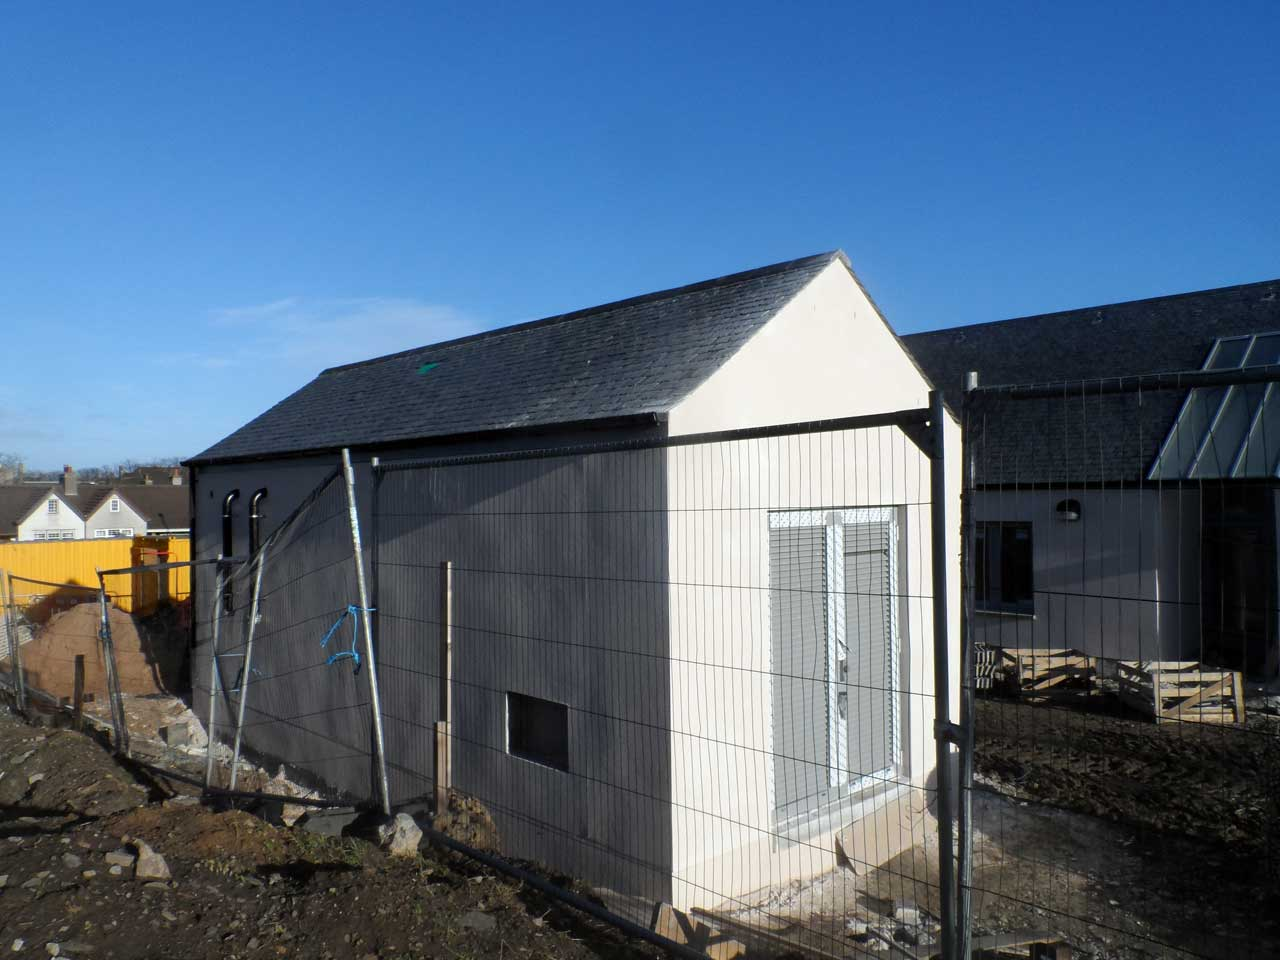 Photo: New Children's Home In Wick 2 February 2014